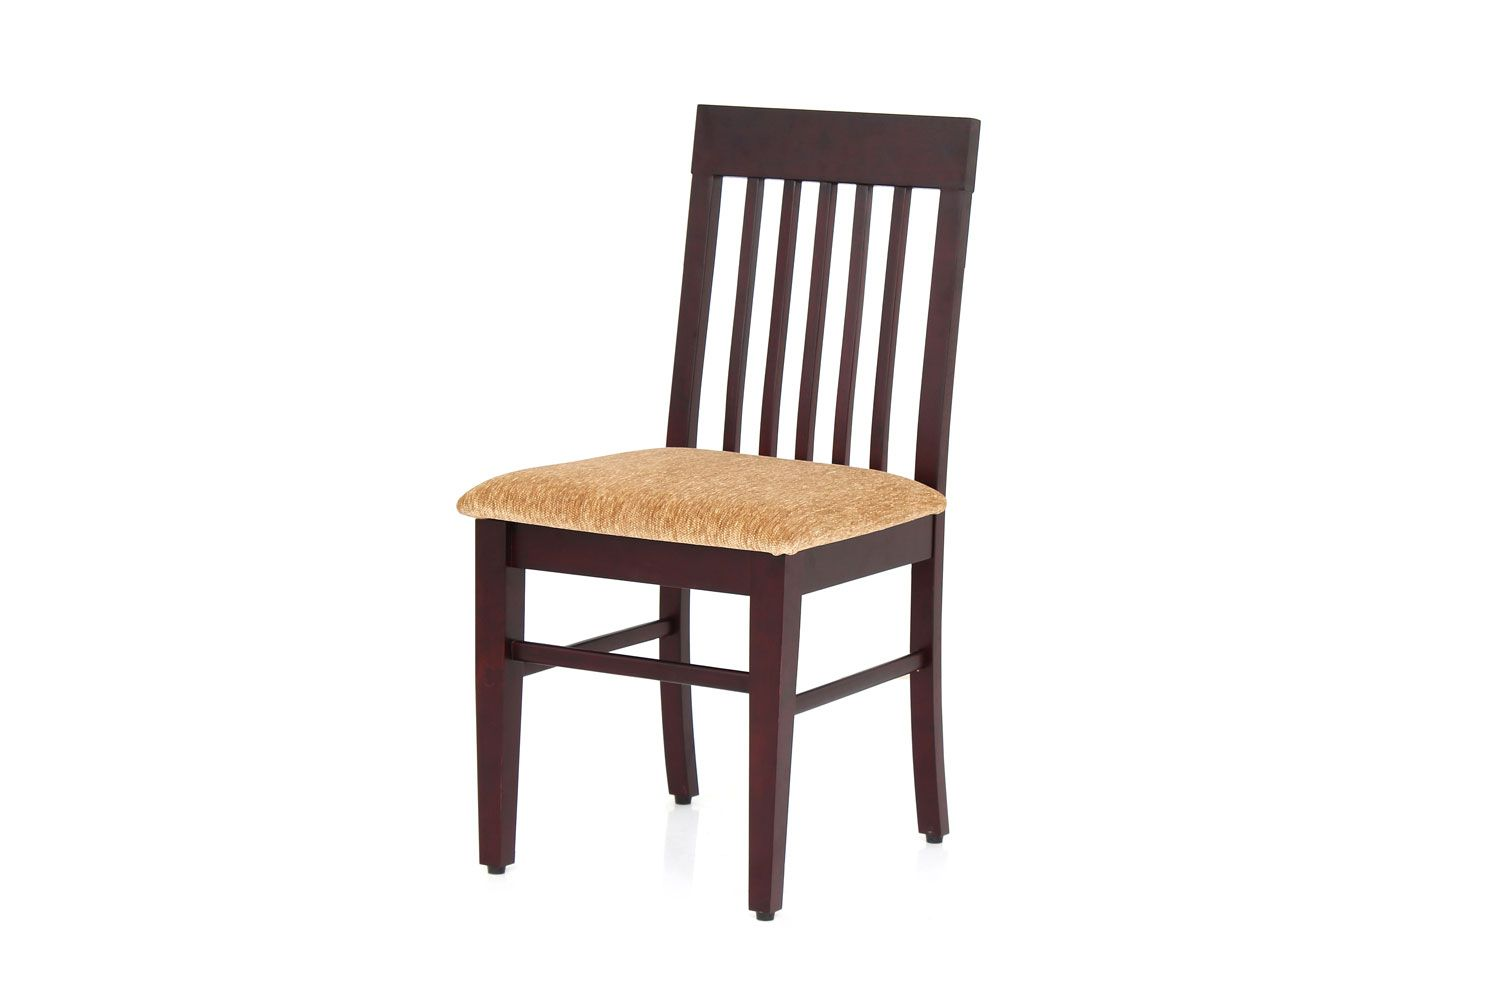 Hevea Furniture Is Mass Furniture Product Manufacturer In Chennai Here You Can Find Number Of Dining Chair Designs D Dining Chairs Wooden Dining Chairs Chair